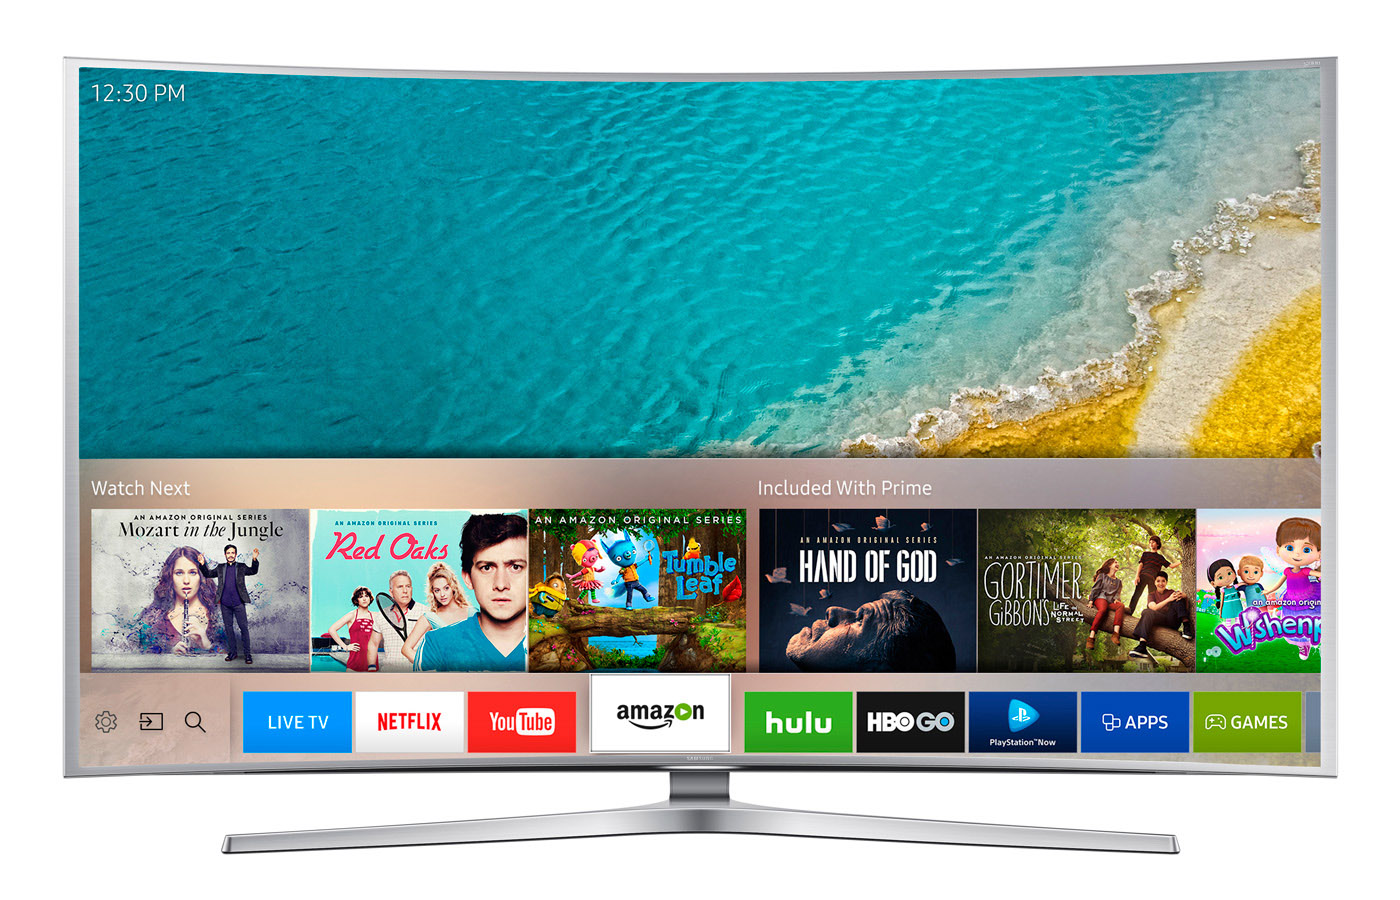 samsung-smart-tv-amazon-prime-music.jpg